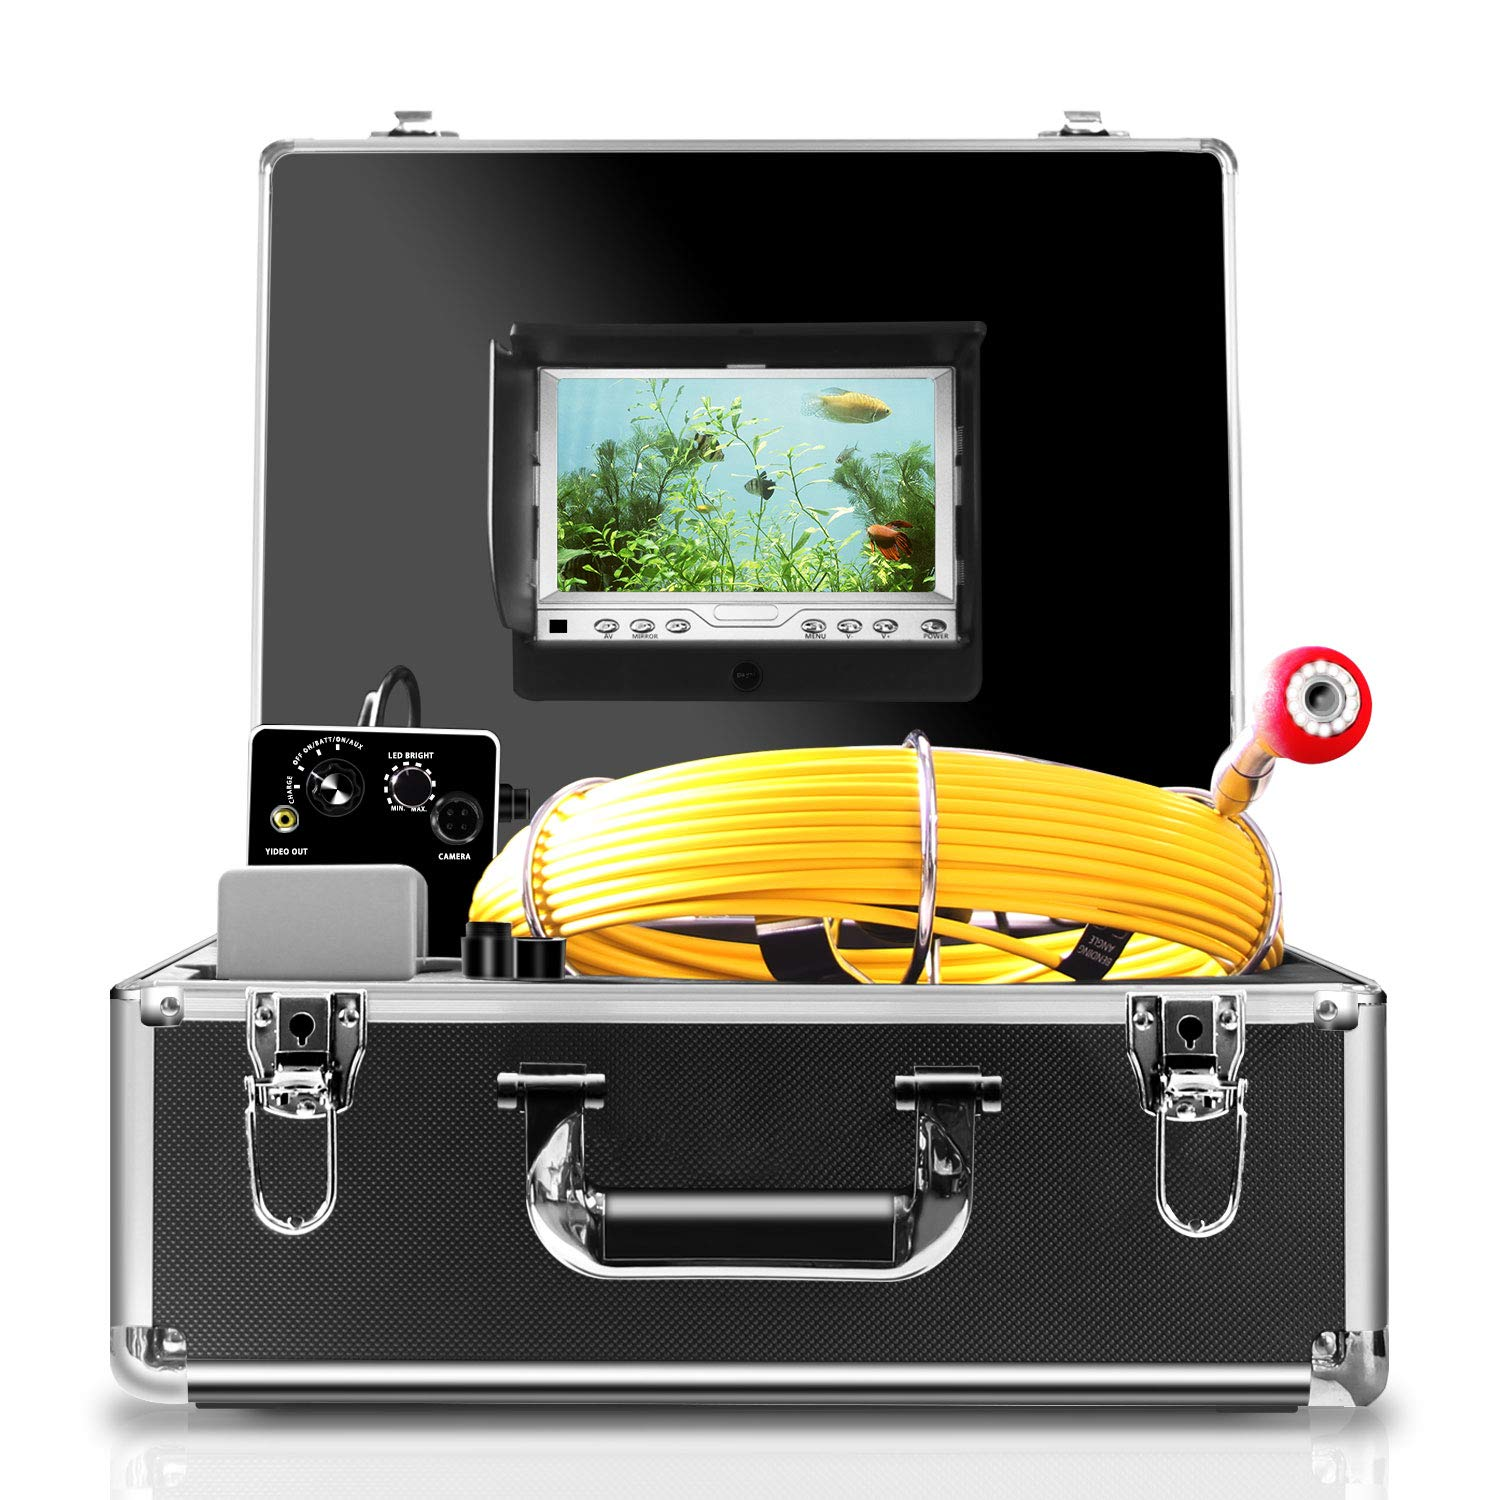 Pipe Inspection Camera,IHBUDS Pipeline Drain Industrial Endoscope, 30M/100ft IP68 Waterproof Snake Video System with 7 Inch LCD Monitor 1000TVL Sony CCD DVR Recorder Sewer Camera(8GB SD Card Included)